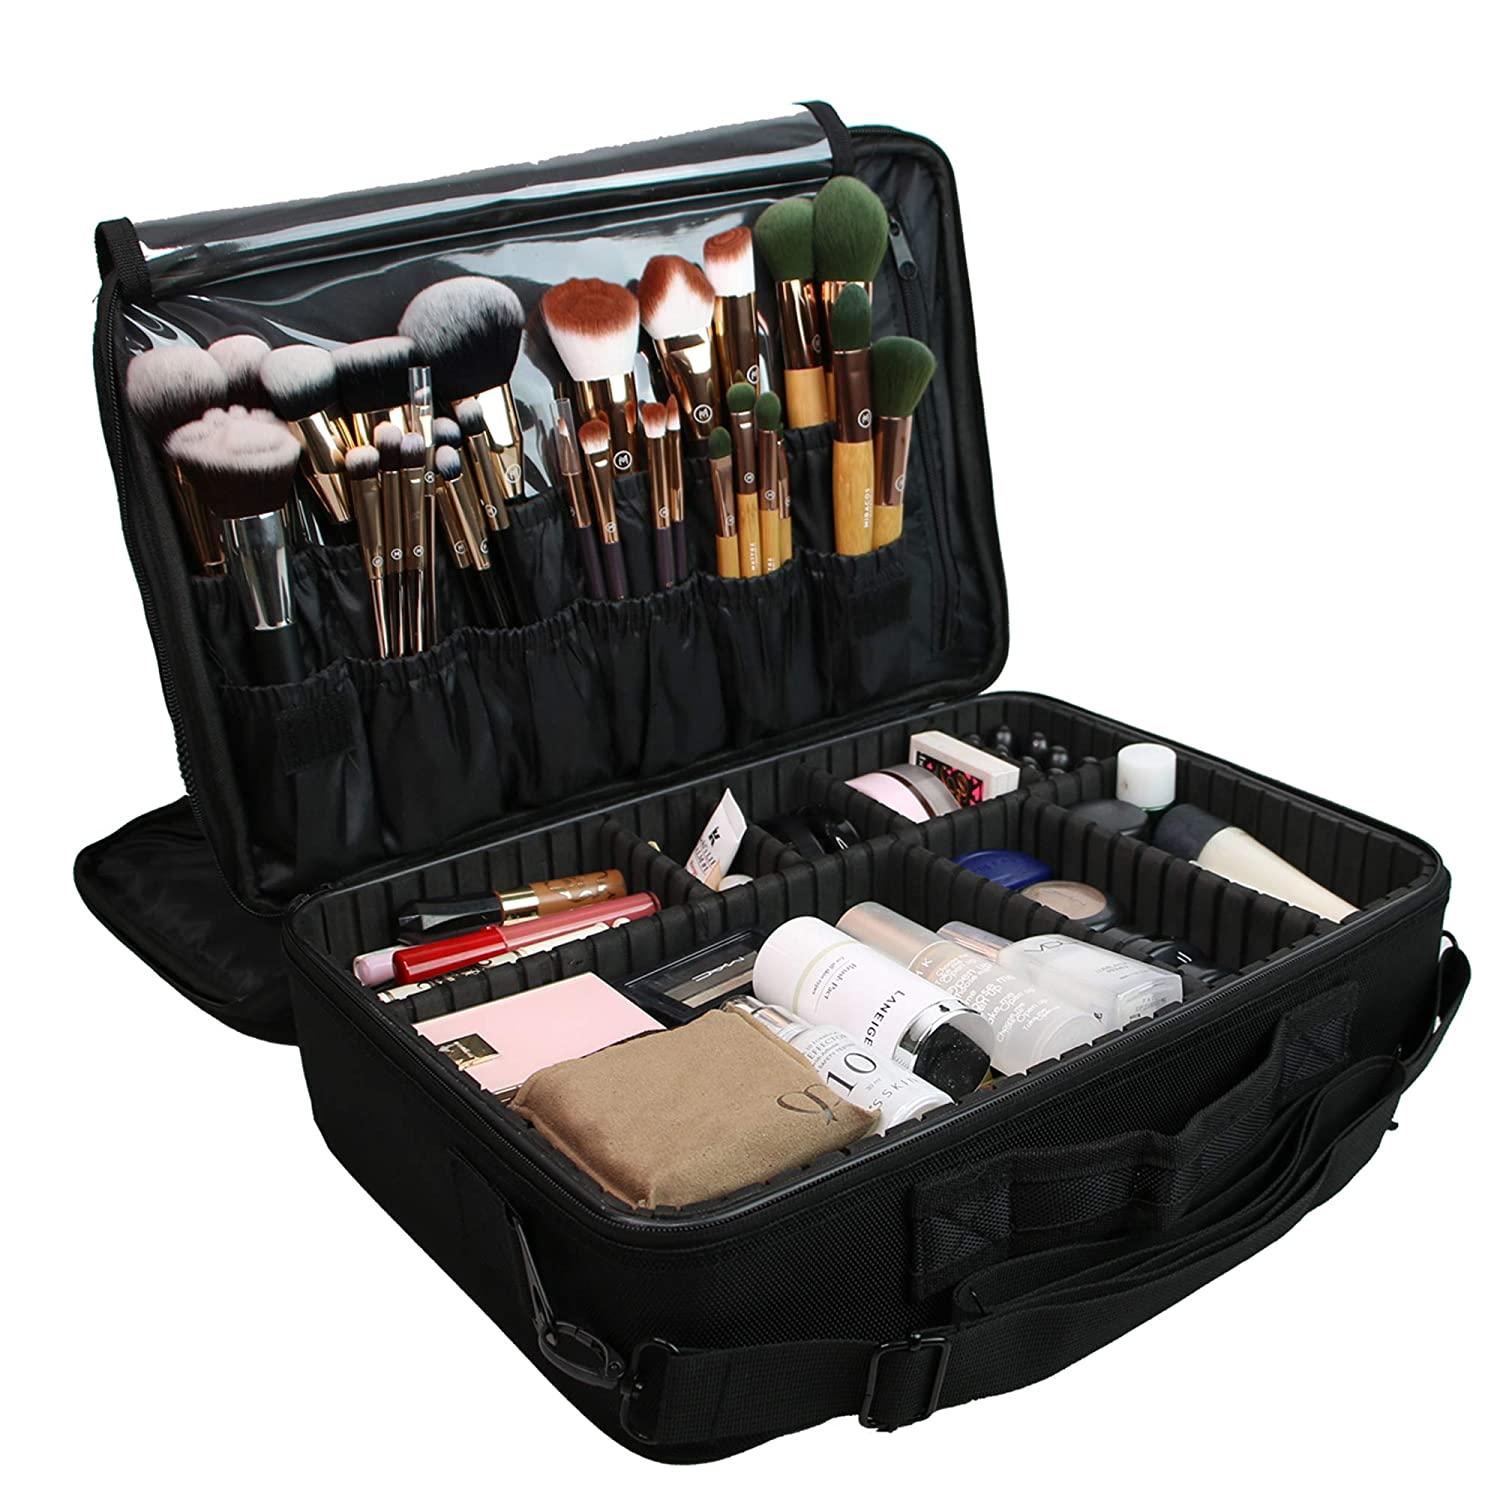 Large Professional Makeup Train Case Cosmetic Bag Brush Organizer and Storage 16 Travel Make Up Artist Box 3 Layer Capacity with Adjustable Dividers